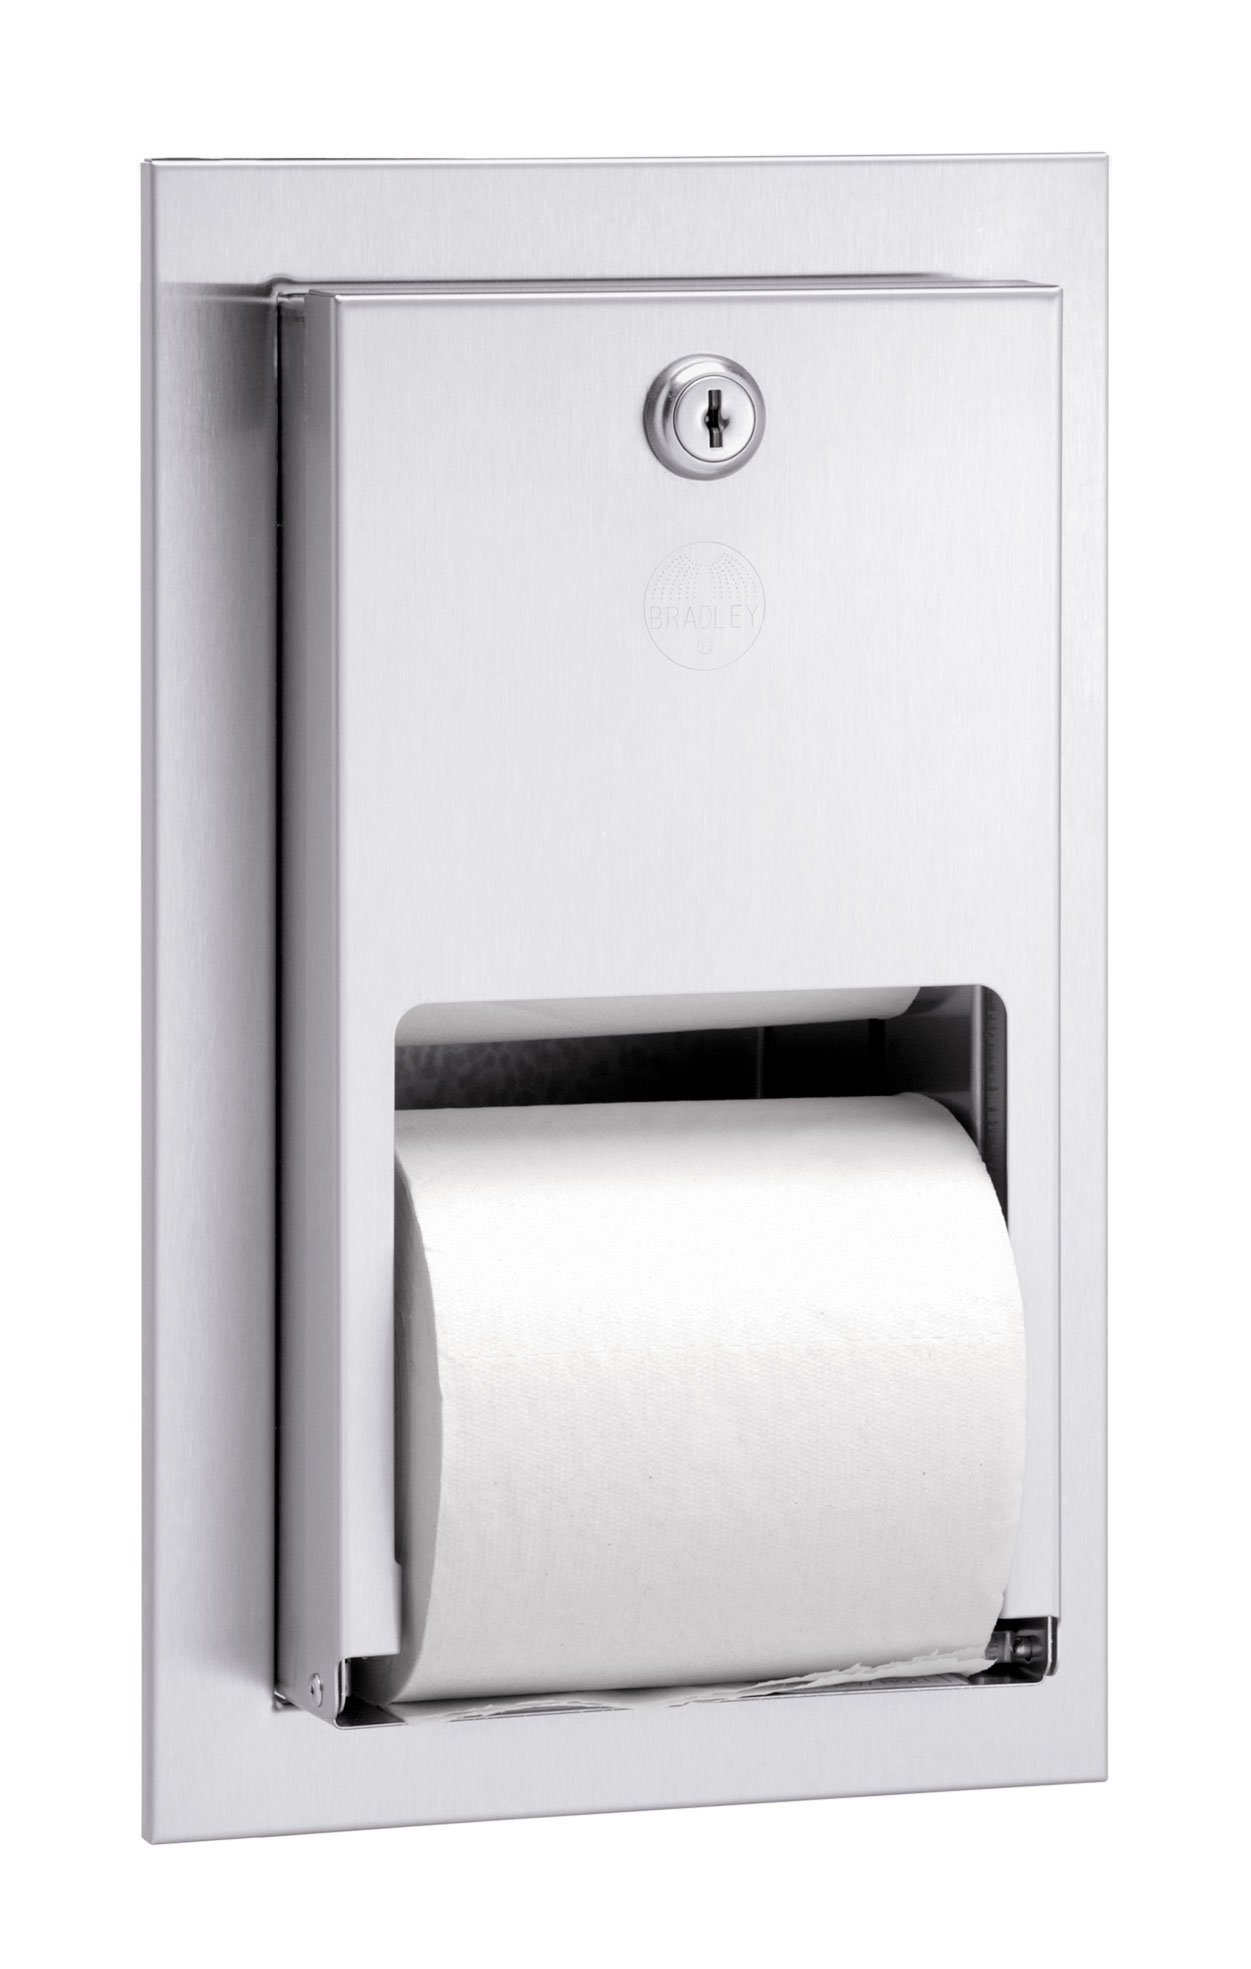 Bradley 5412 Dual Roll Toilet Paper Dispenser